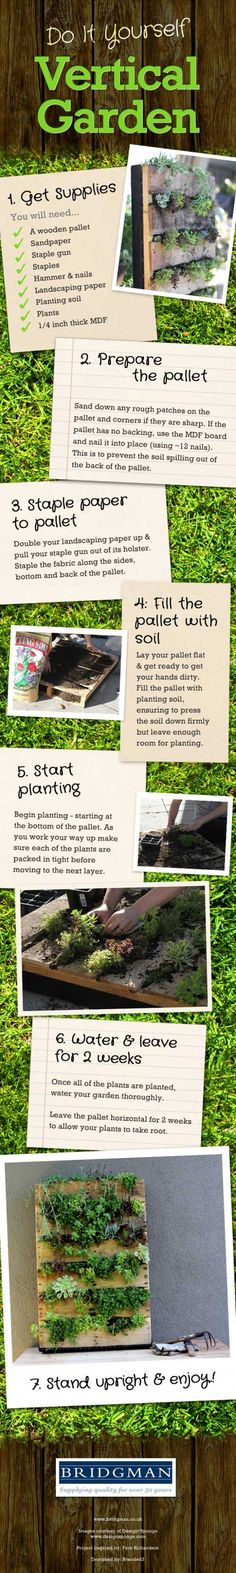 Do It Yourself Vertical Garden [#infographic sort of]